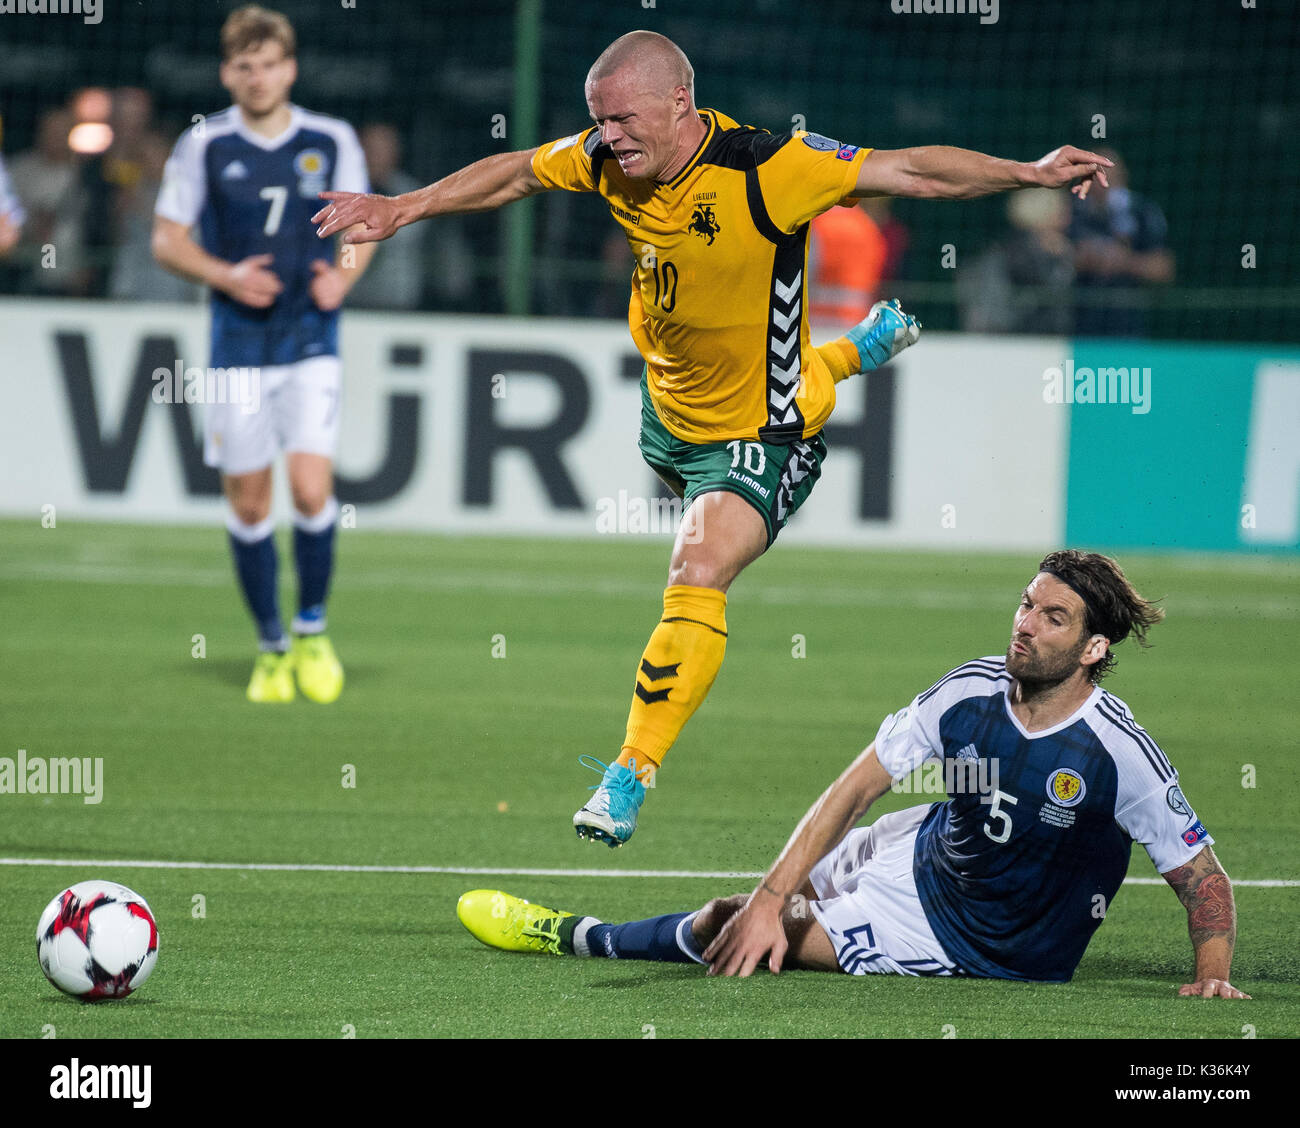 1st Sep 2017 Darvydas Sernas Top Of Lithuania Vies With Charlie Mulgrew R Scotland During The Fifa World Cup European Qualifying Group F Match